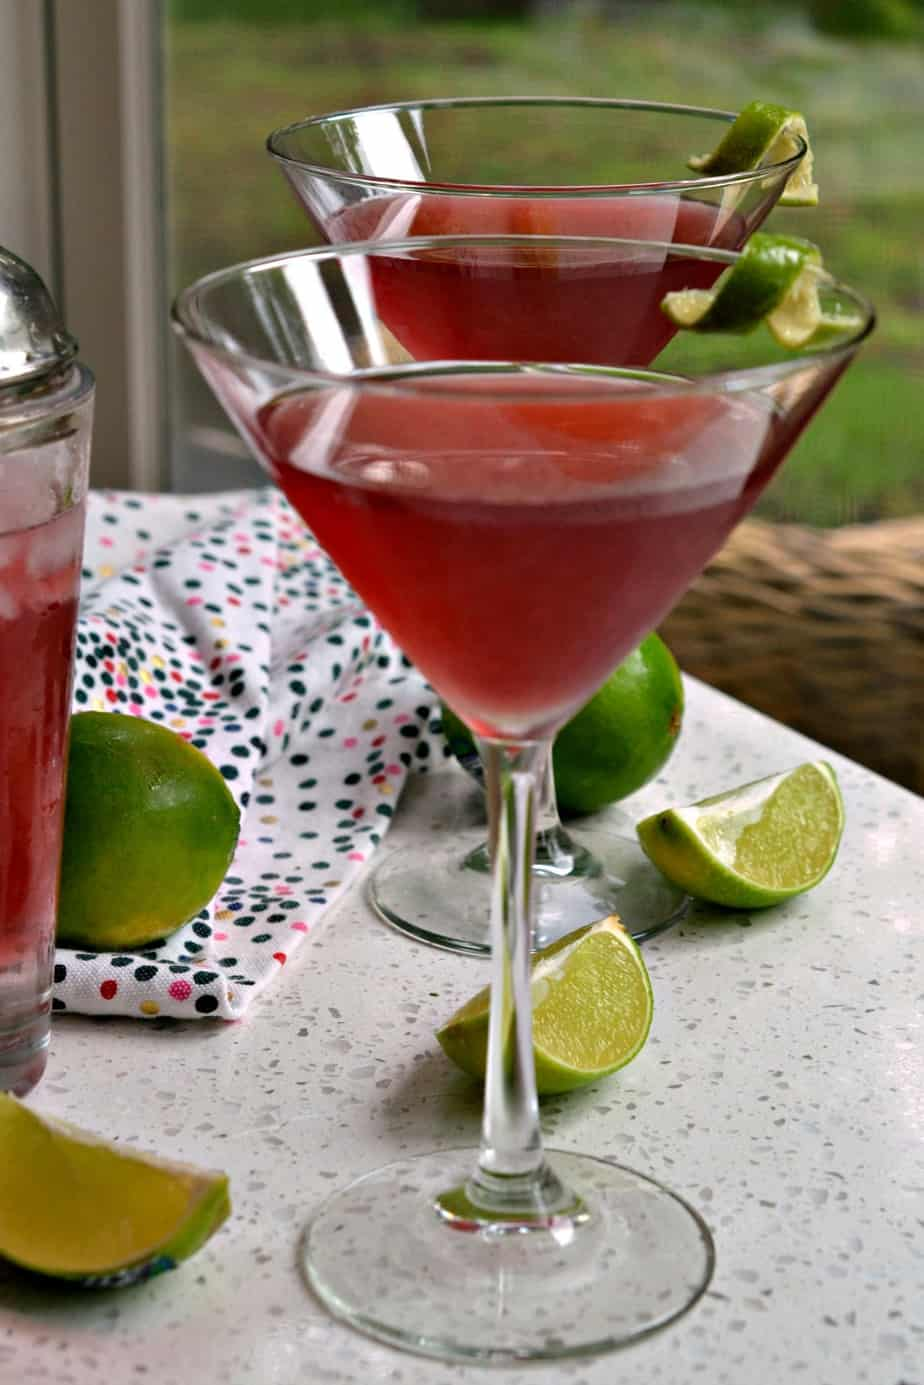 This gorgeous and tasty Cosmopolitan Drink is one of my favorite cocktails.